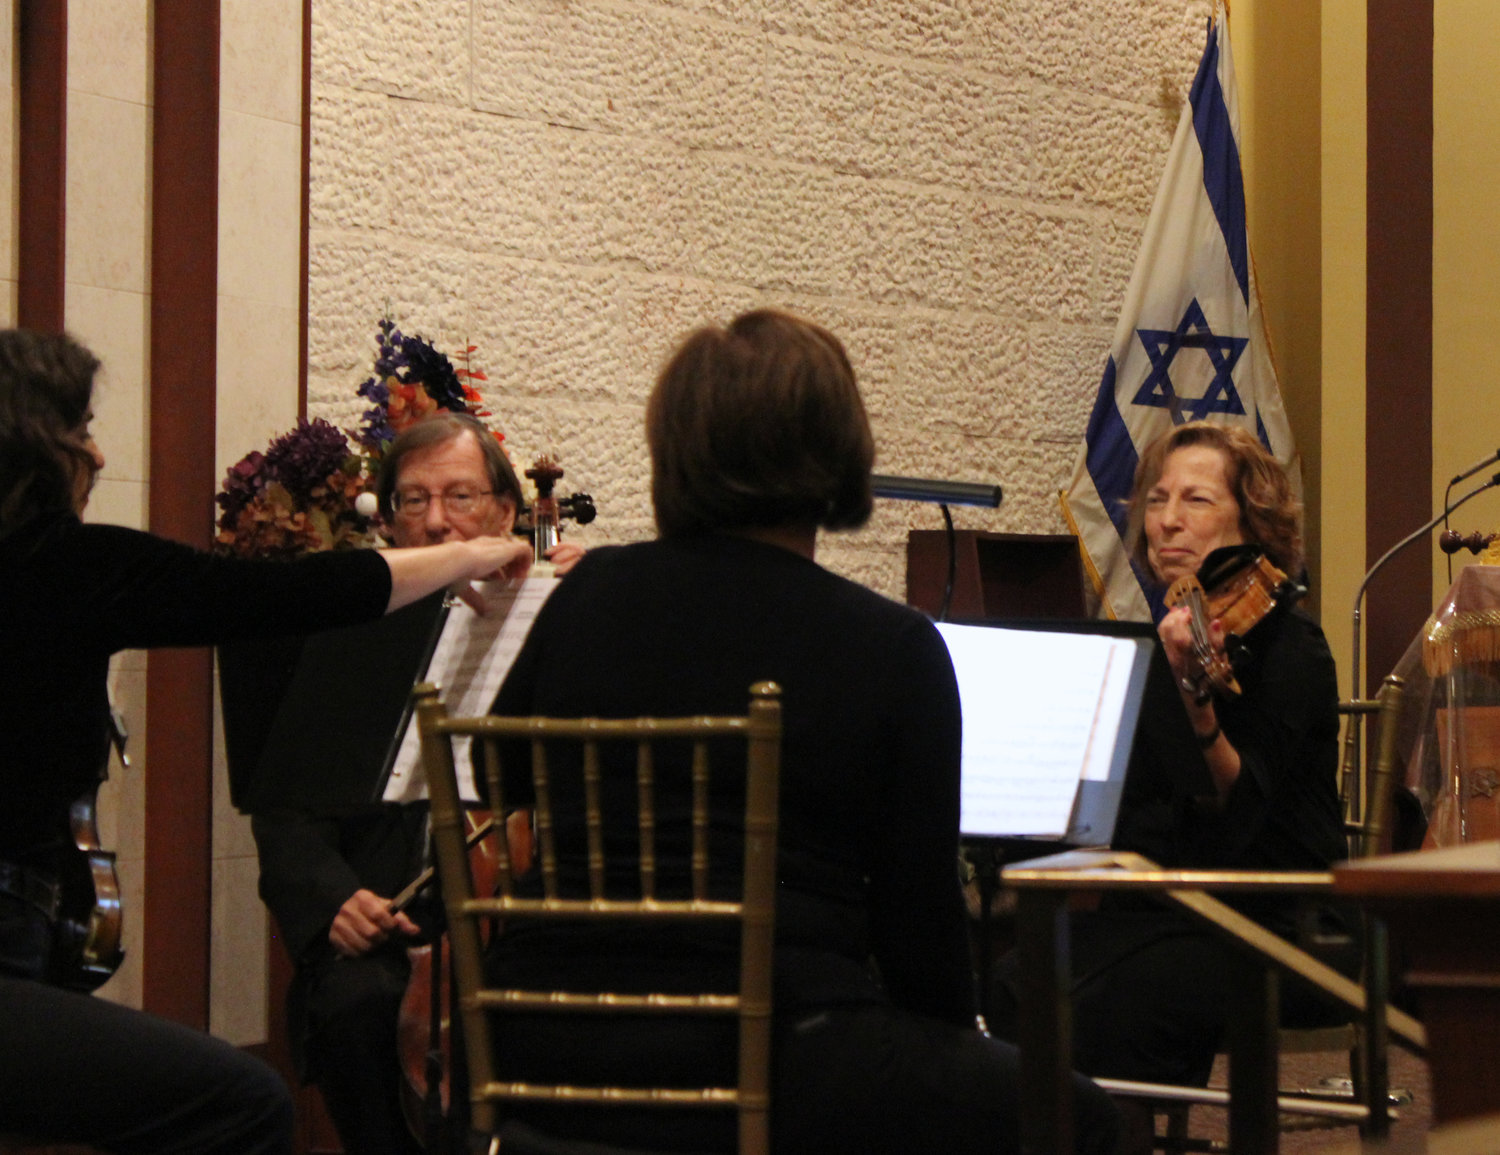 For the third year, musicians played instruments that were salvaged and restored from the Holocaust.